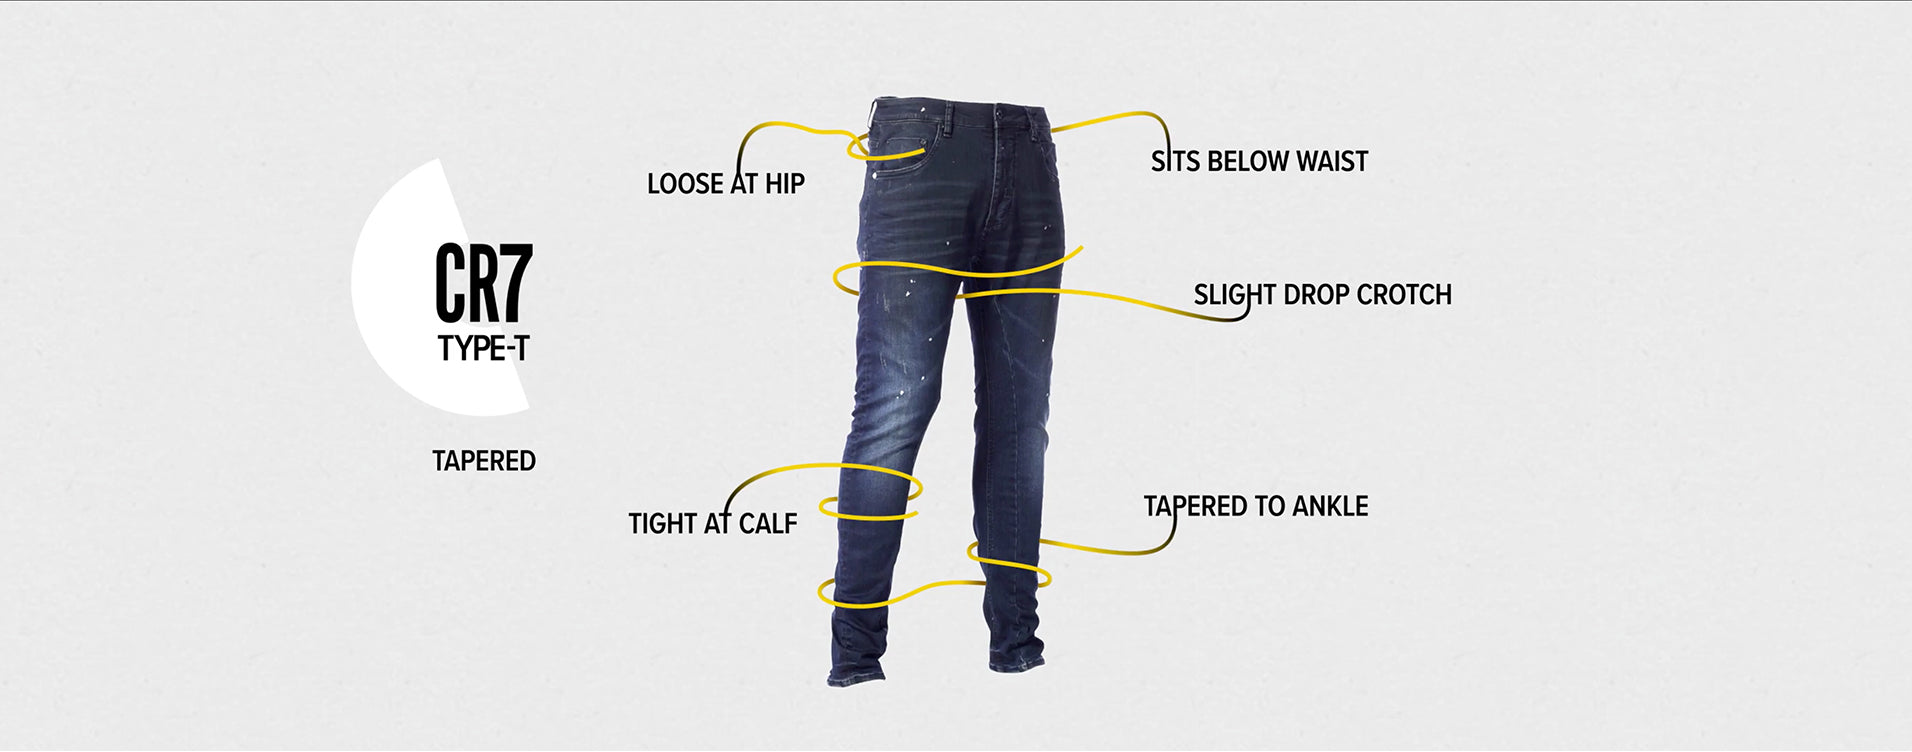 TYPE-T TAPERED JEAN - GUNMETAL fit